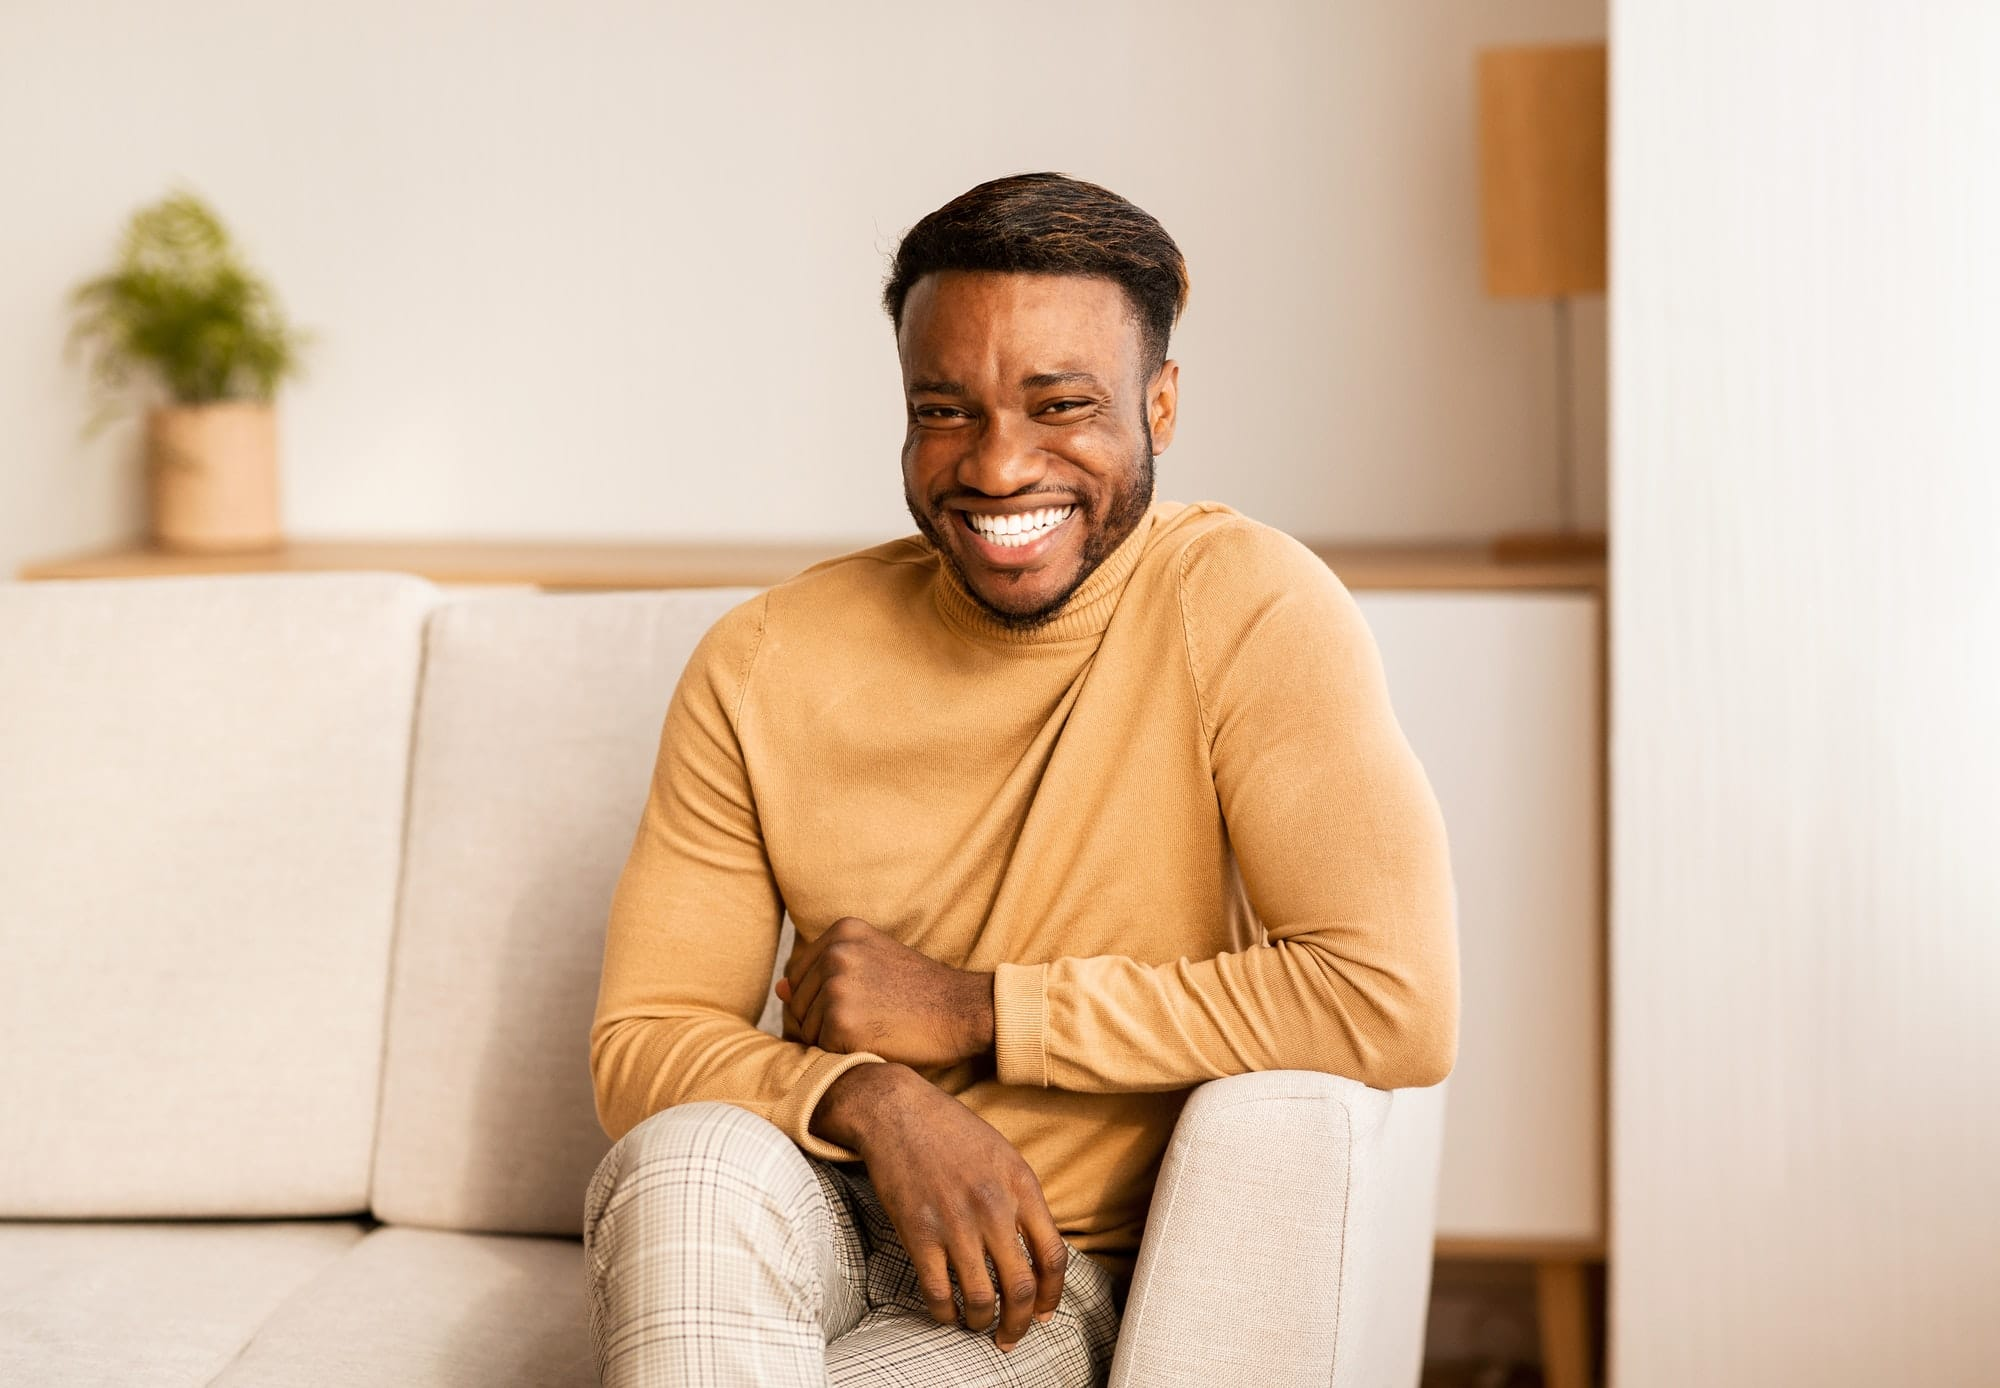 Afro Guy Smiling At Camera Sitting On Sofa At Home